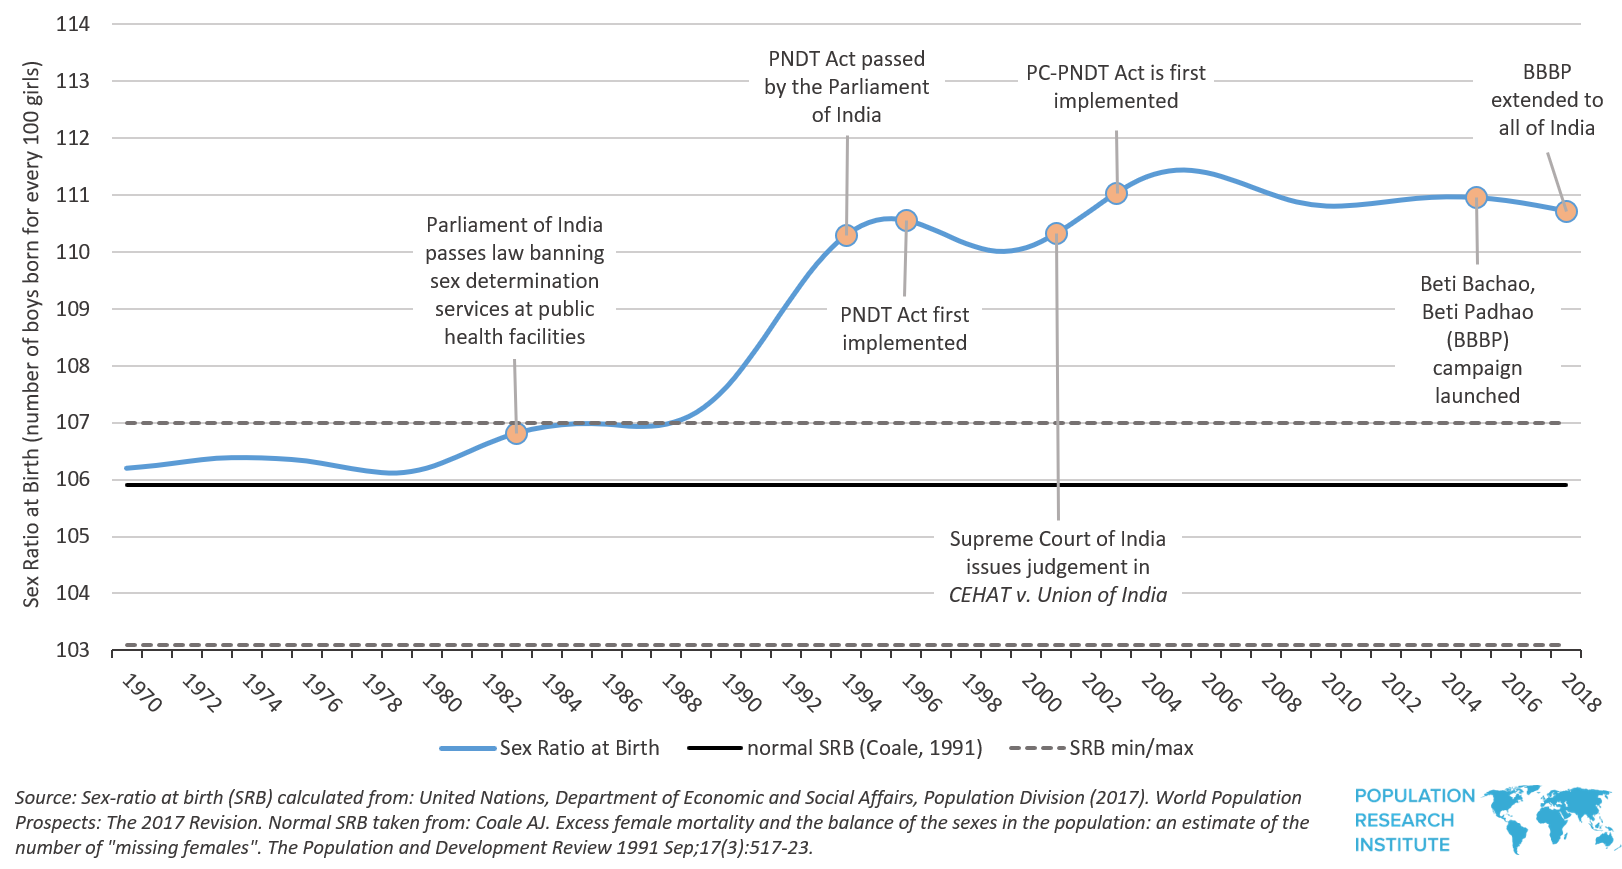 India Sex Ratio at Birth, 1970-2018